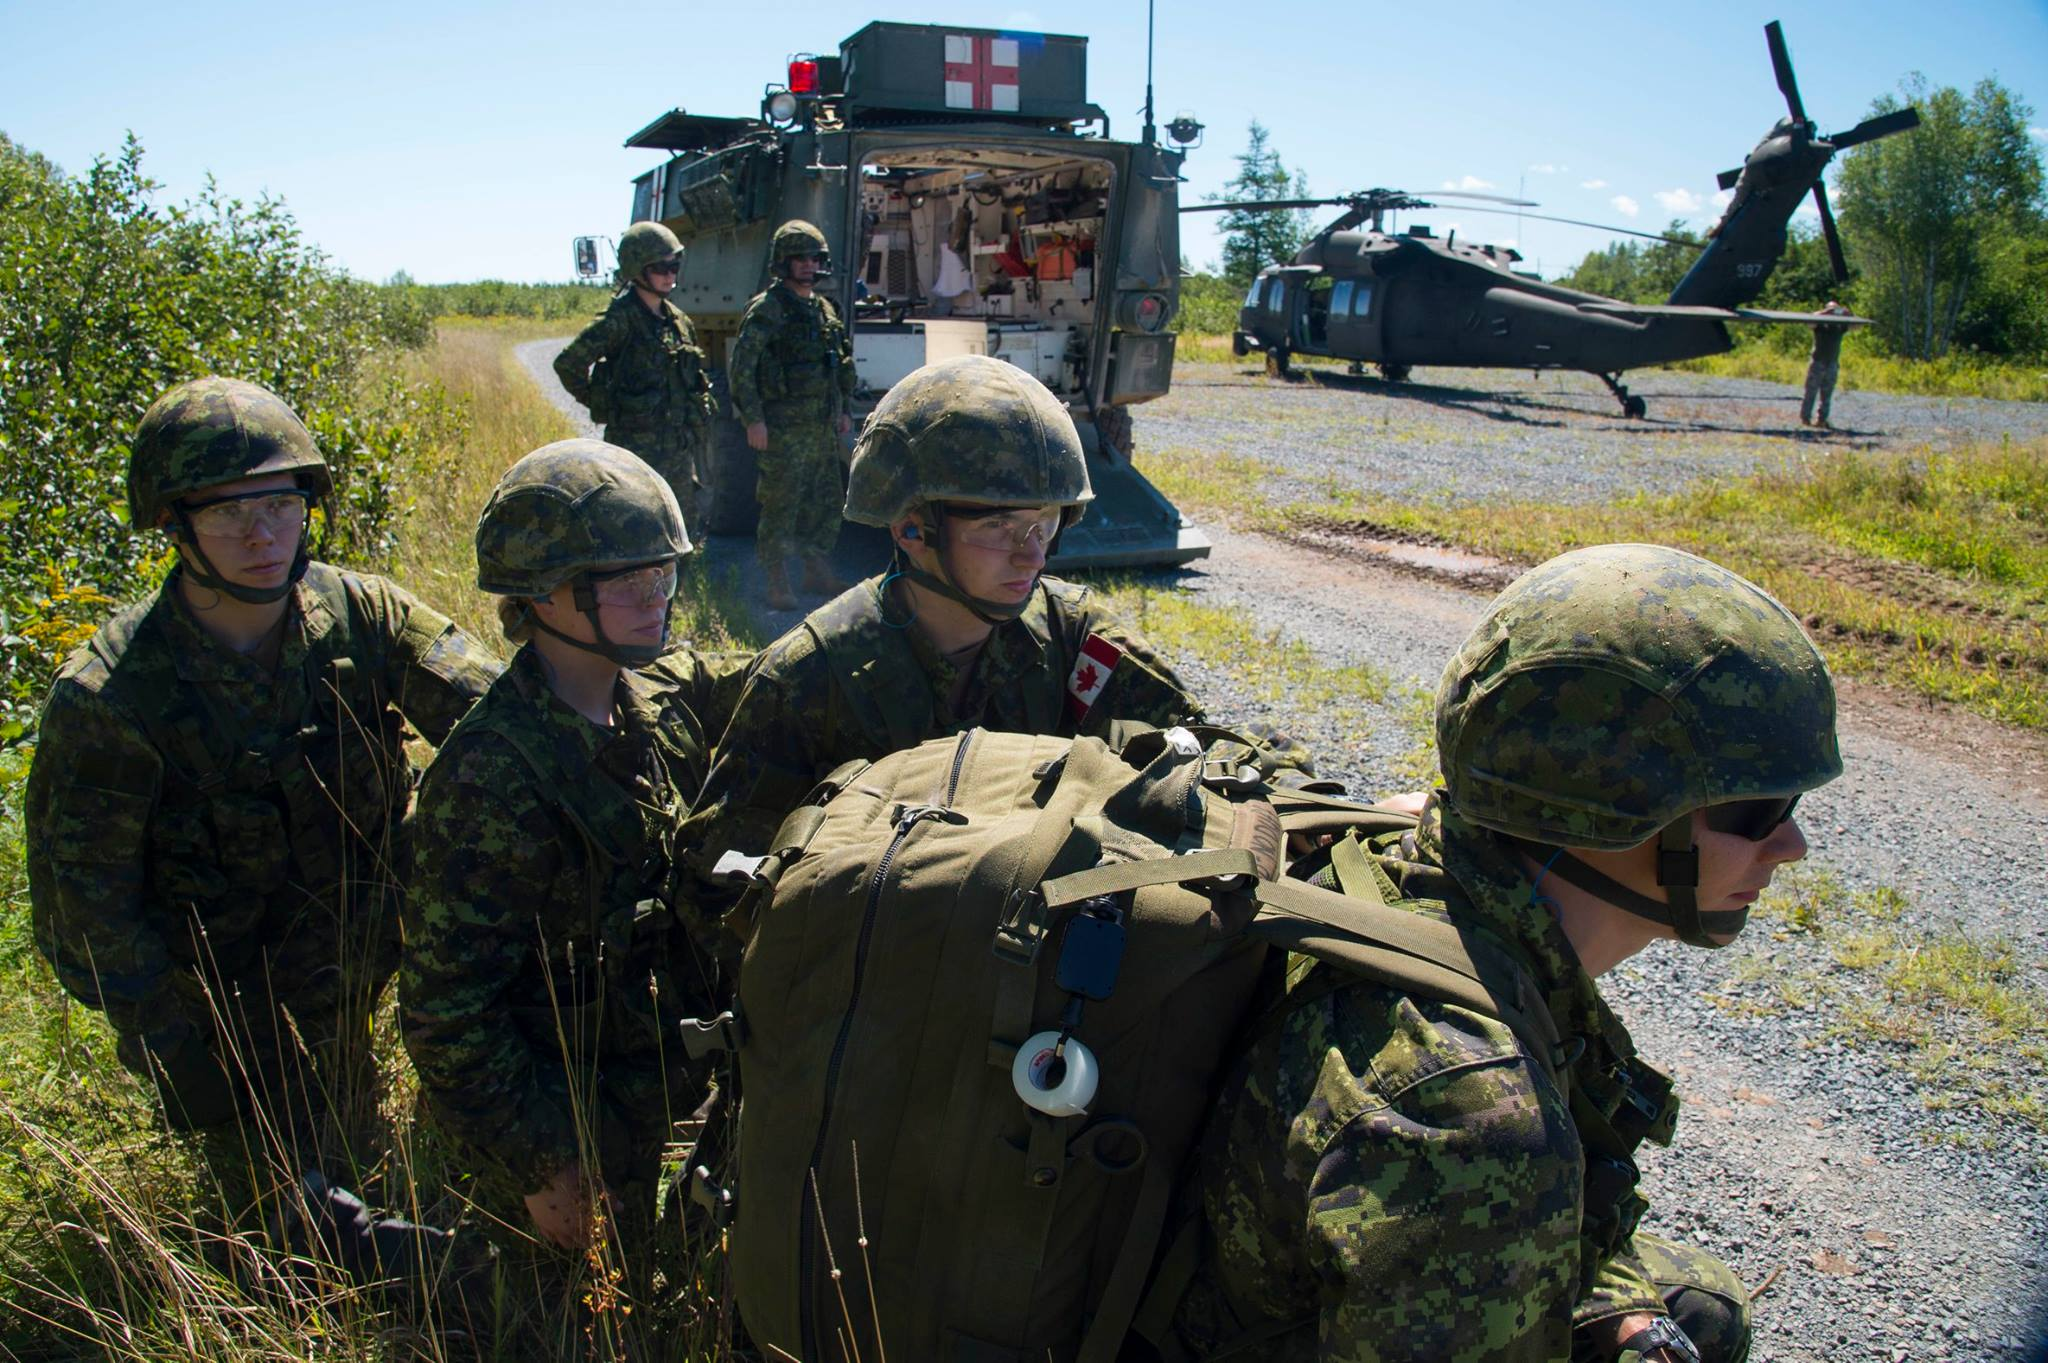 Military medics prepare to transfer a simulated casualty from a Blackhawk helicopter as part of a casualty exercise during Exercise STRIDENT TRACER at 5th Canadian Division Support Base Gagetown on August 23, 2016. ©2016 DND/MDN Canada. Photo by: Corporal Chris Ringius, Formation Imaging Section Halifax